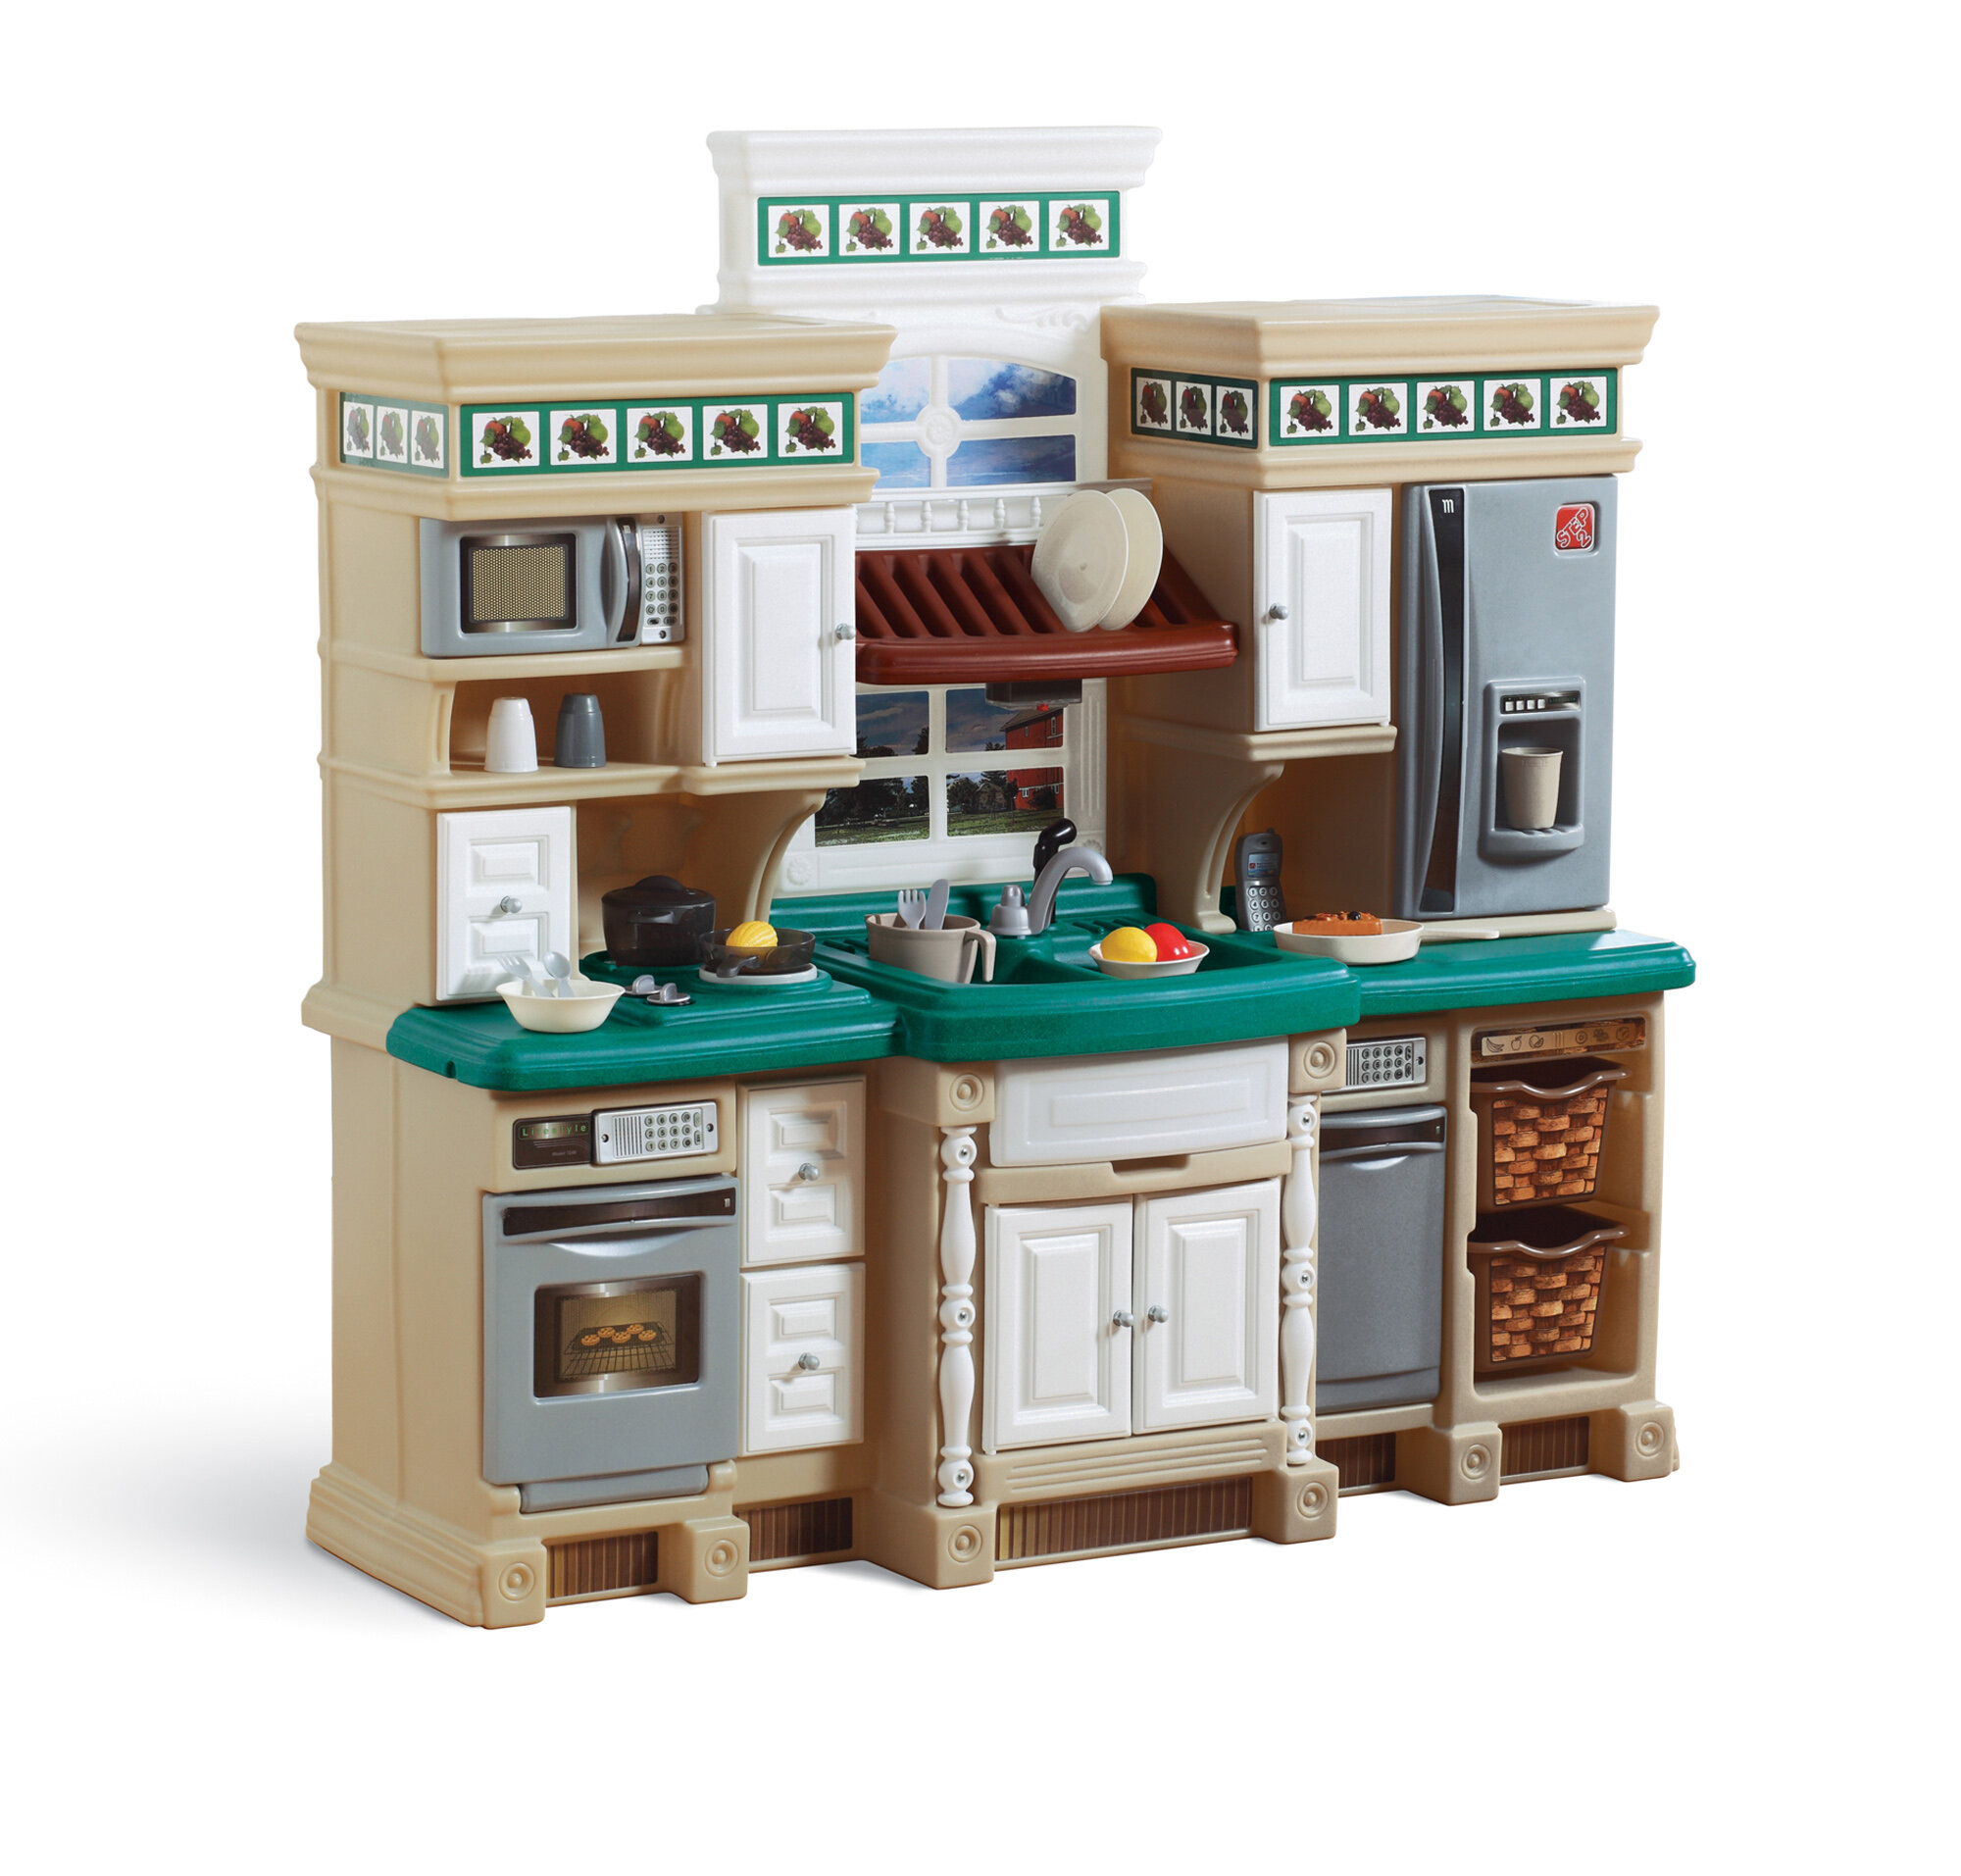 Step2 lifestyle deluxe kitchen set ebay for Kitchen setting pictures